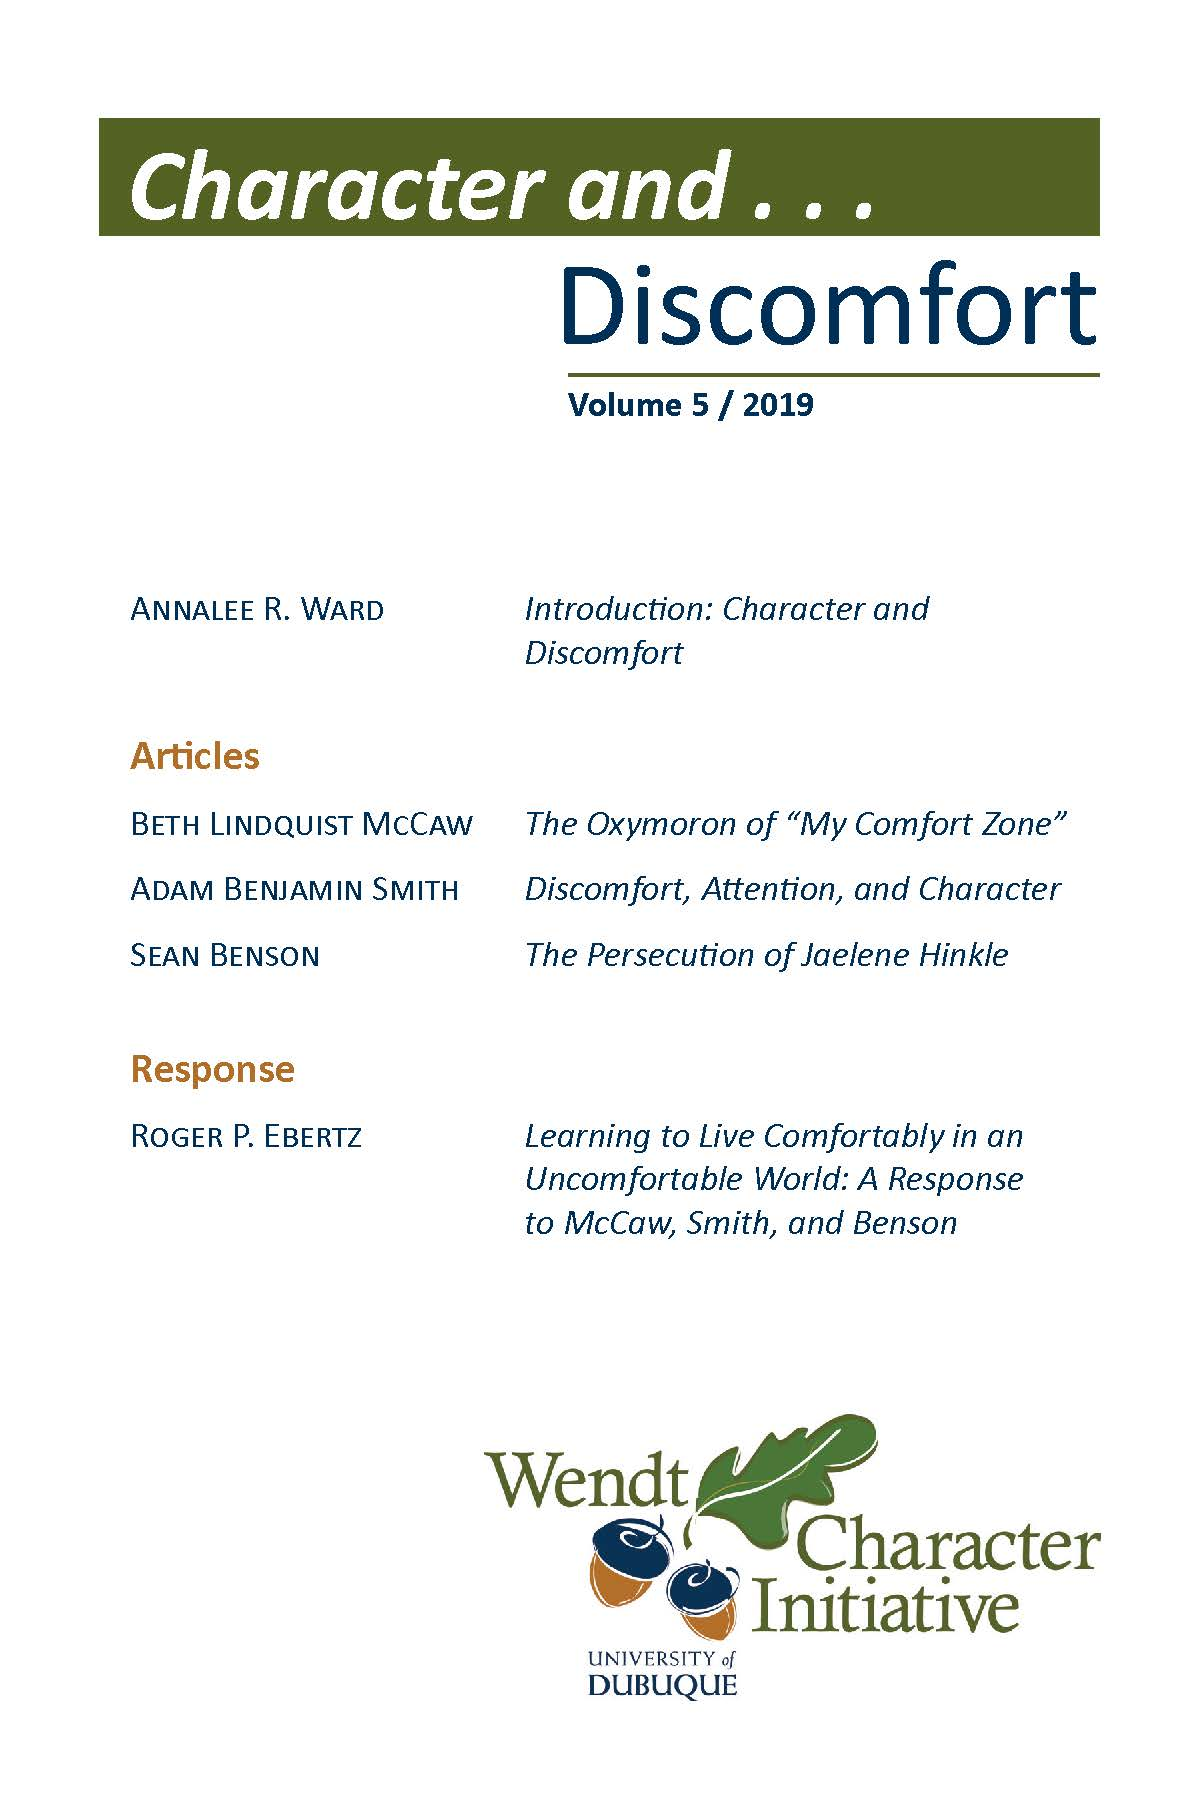 View Character and... Discomfort (Vol. 5, 2019)